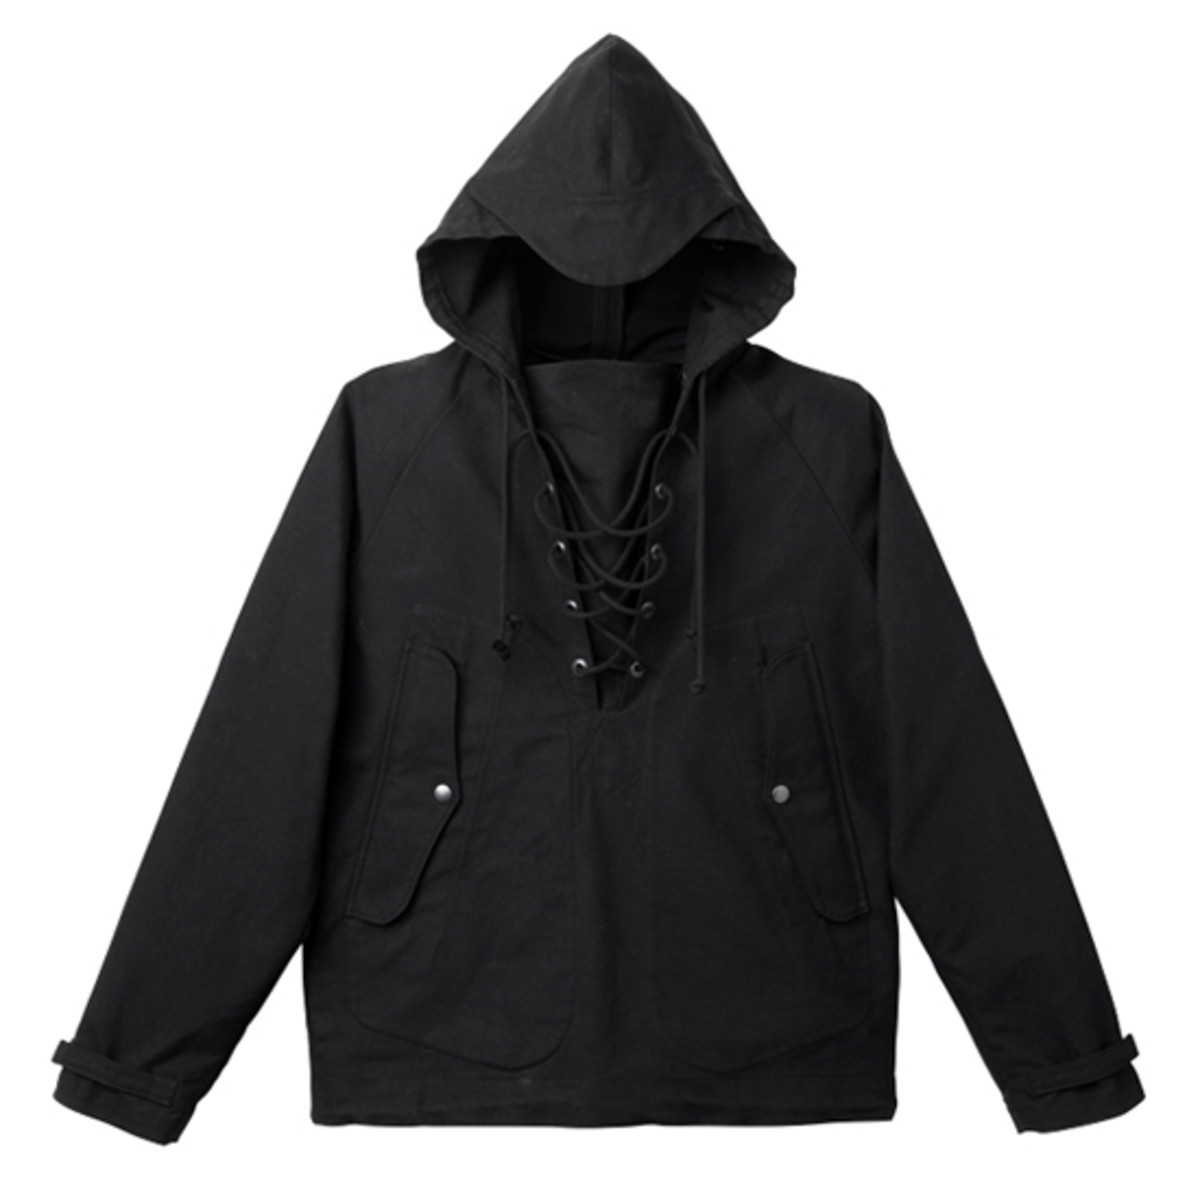 full-metal-anorak-jacket-black